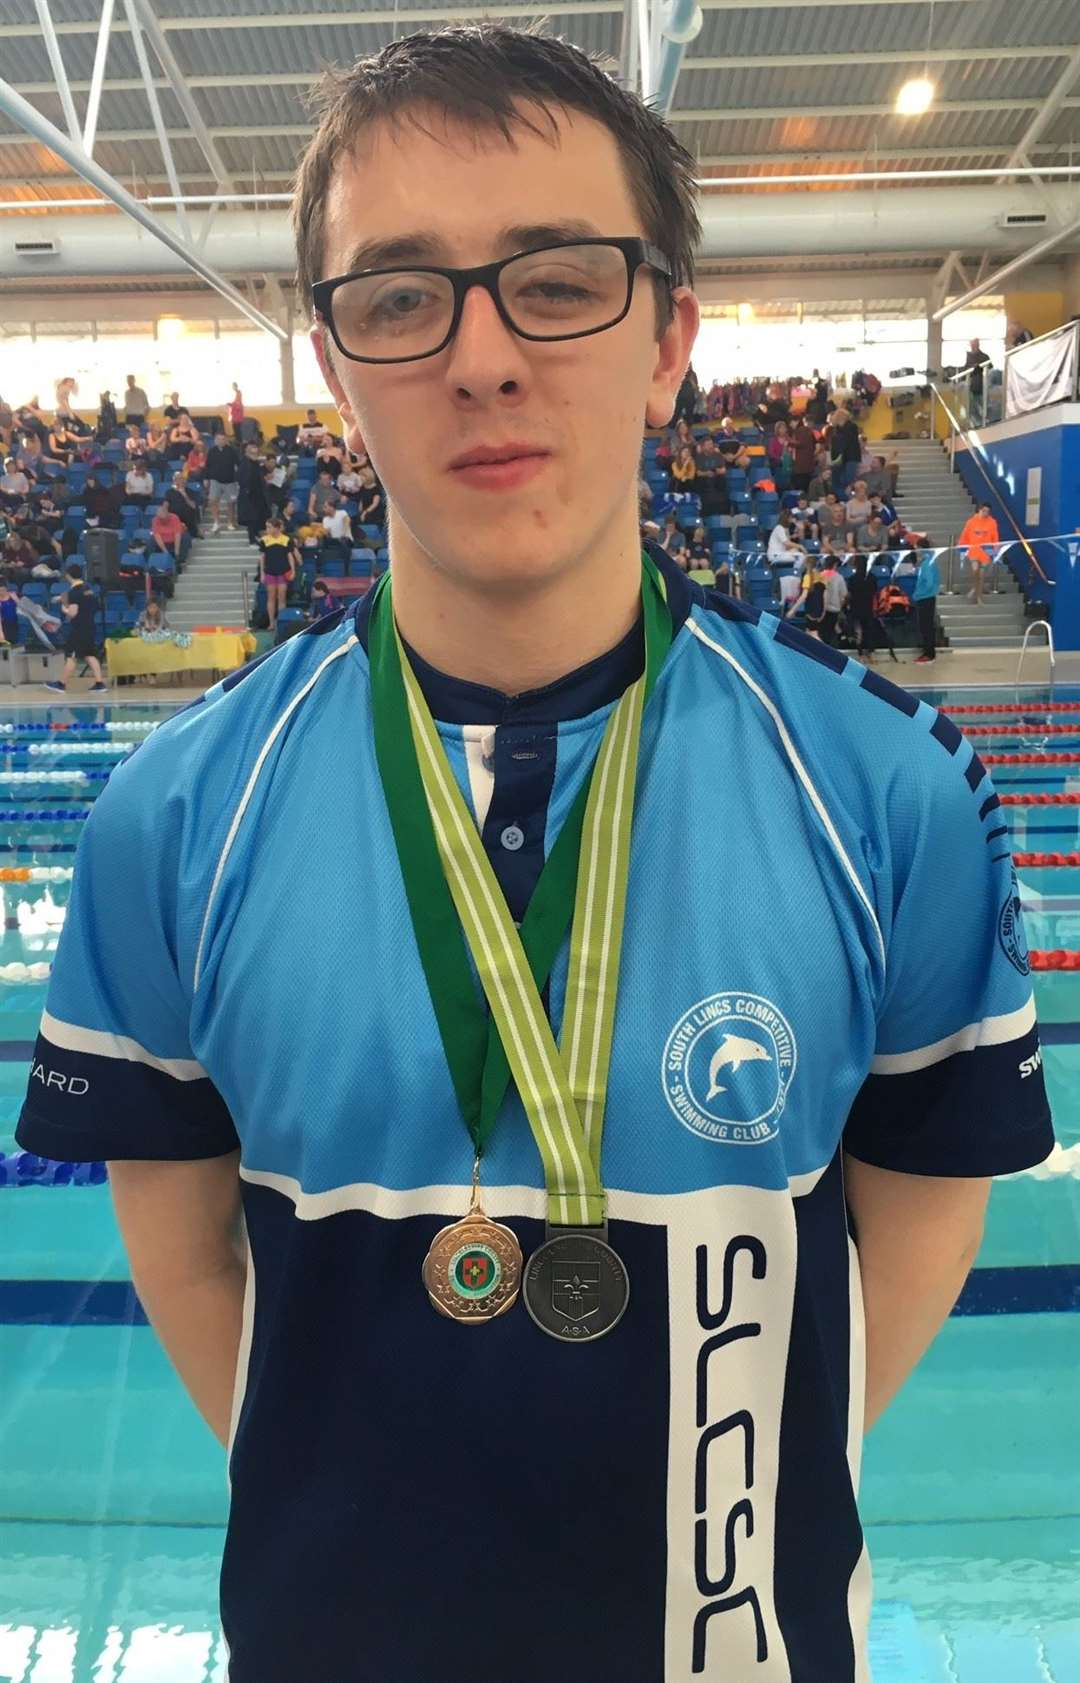 South Lincs Competitive Swimming Club medallist Luke Blanchard.Photo supplied.